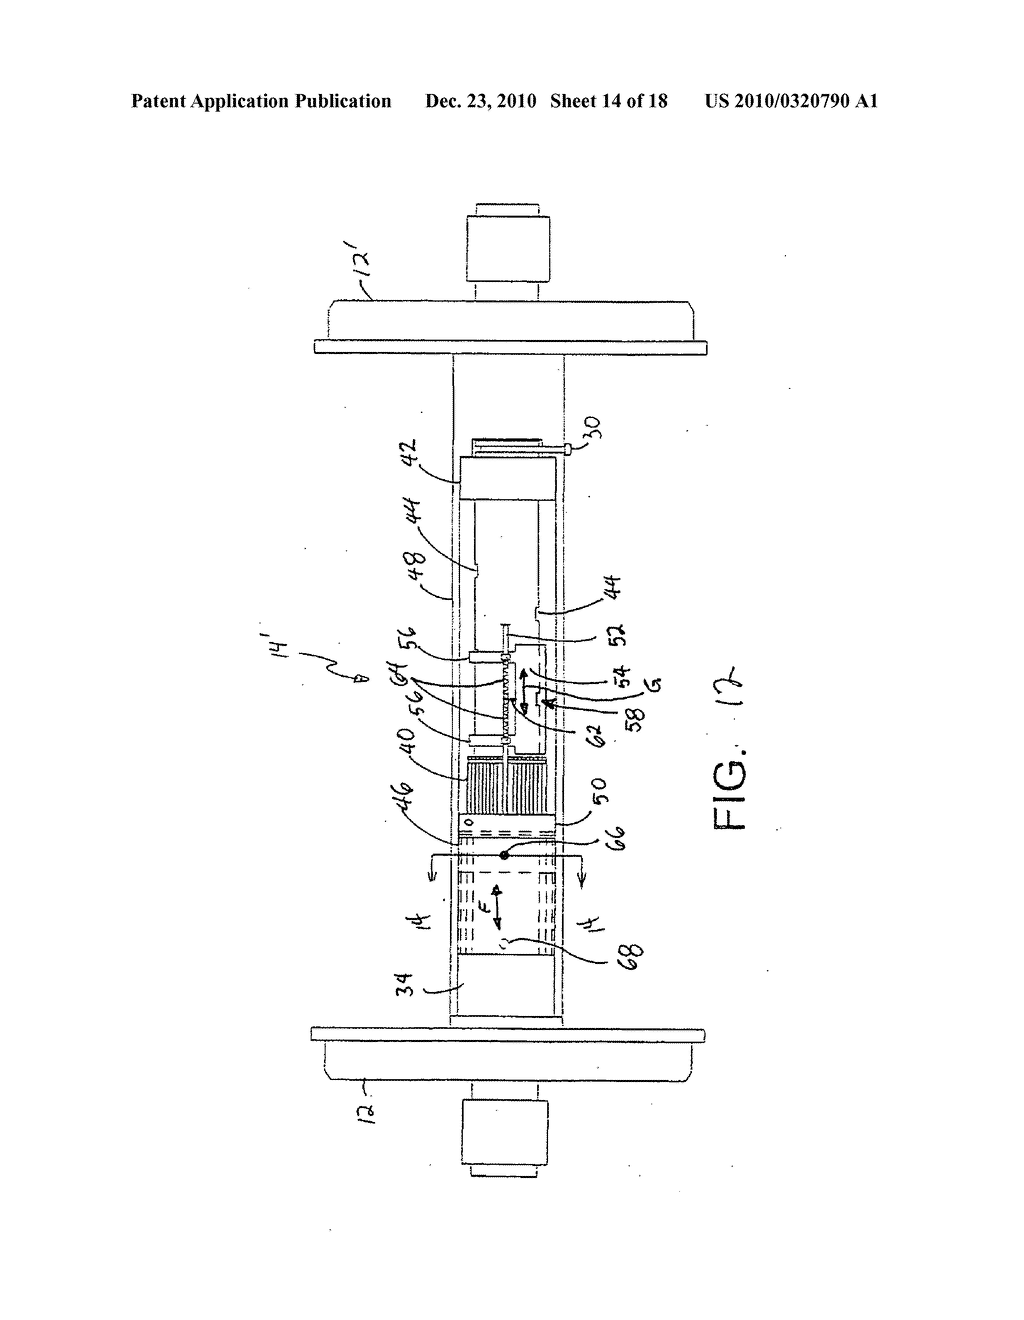 hight resolution of railway car independent axles with axle locking mechanism diagram schematic and image 15